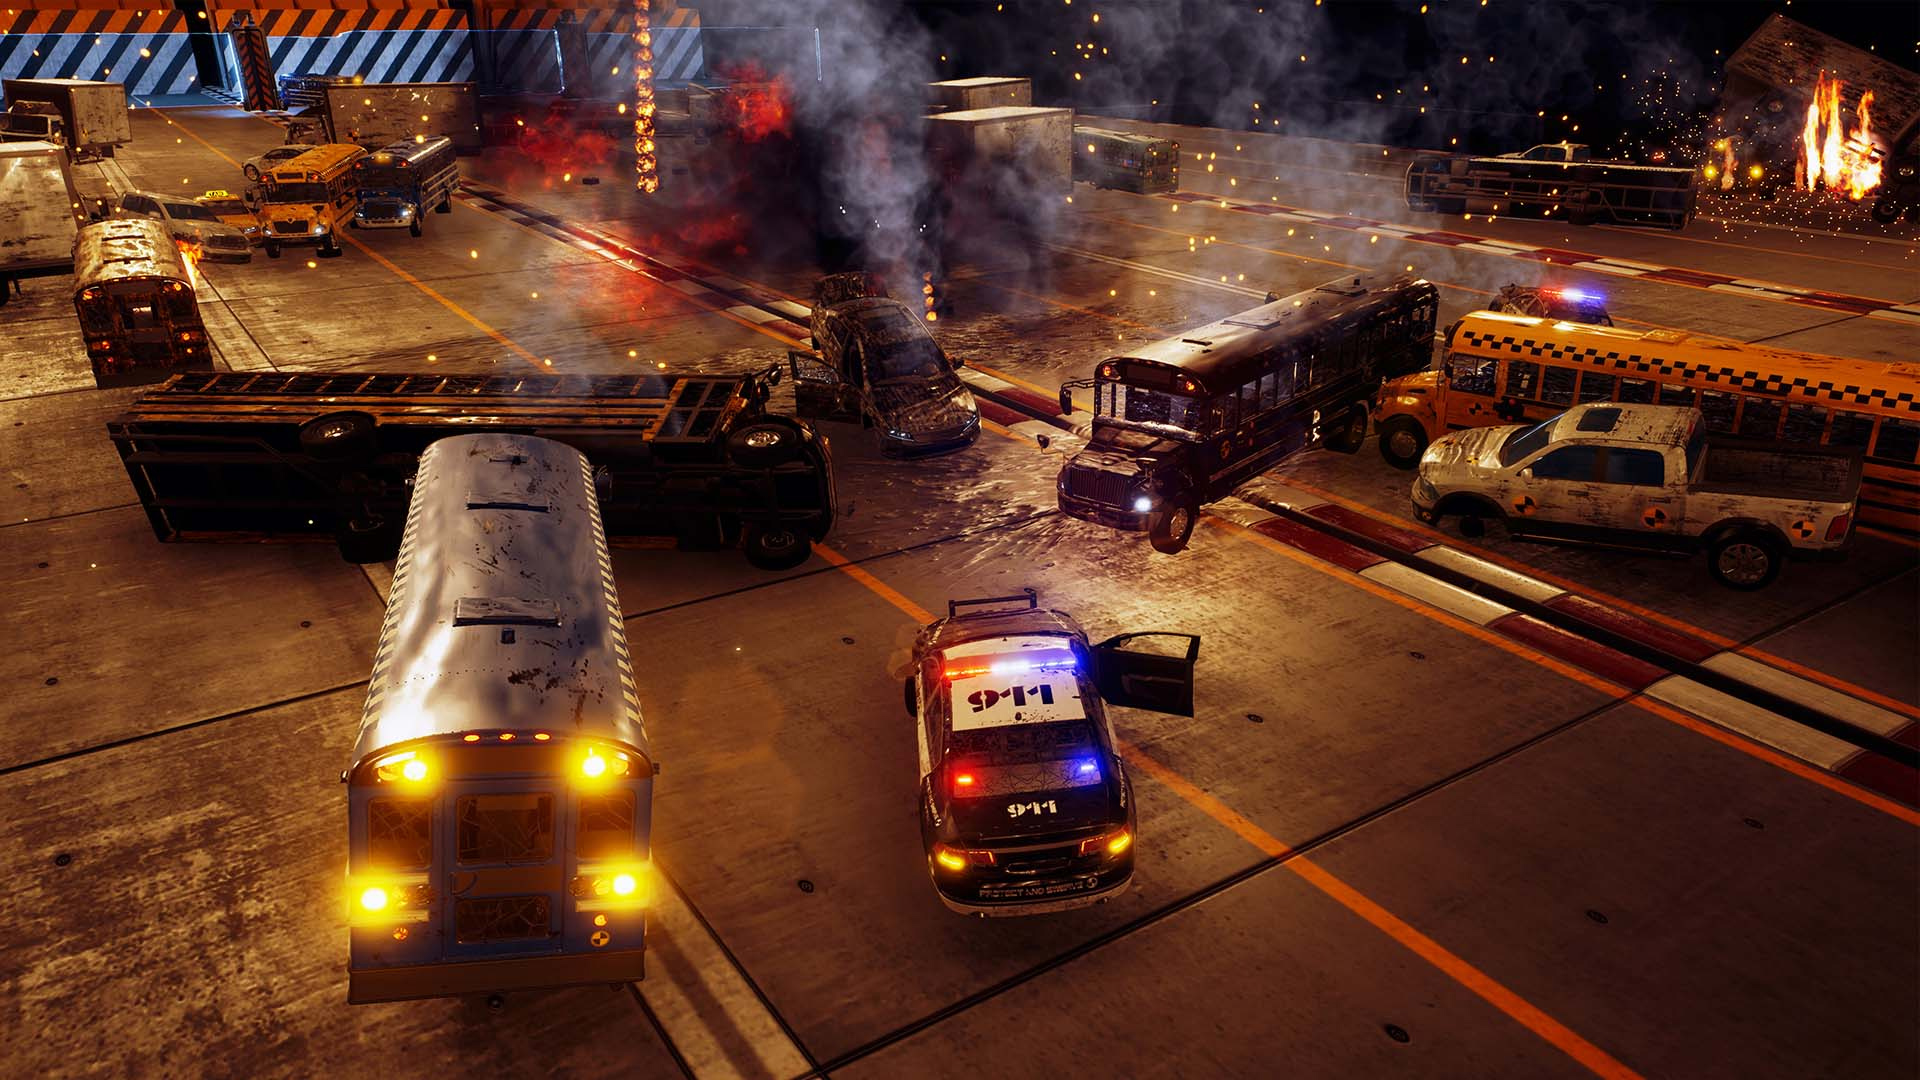 Burnout-inspired Danger Zone headed to Xbox One screenshot